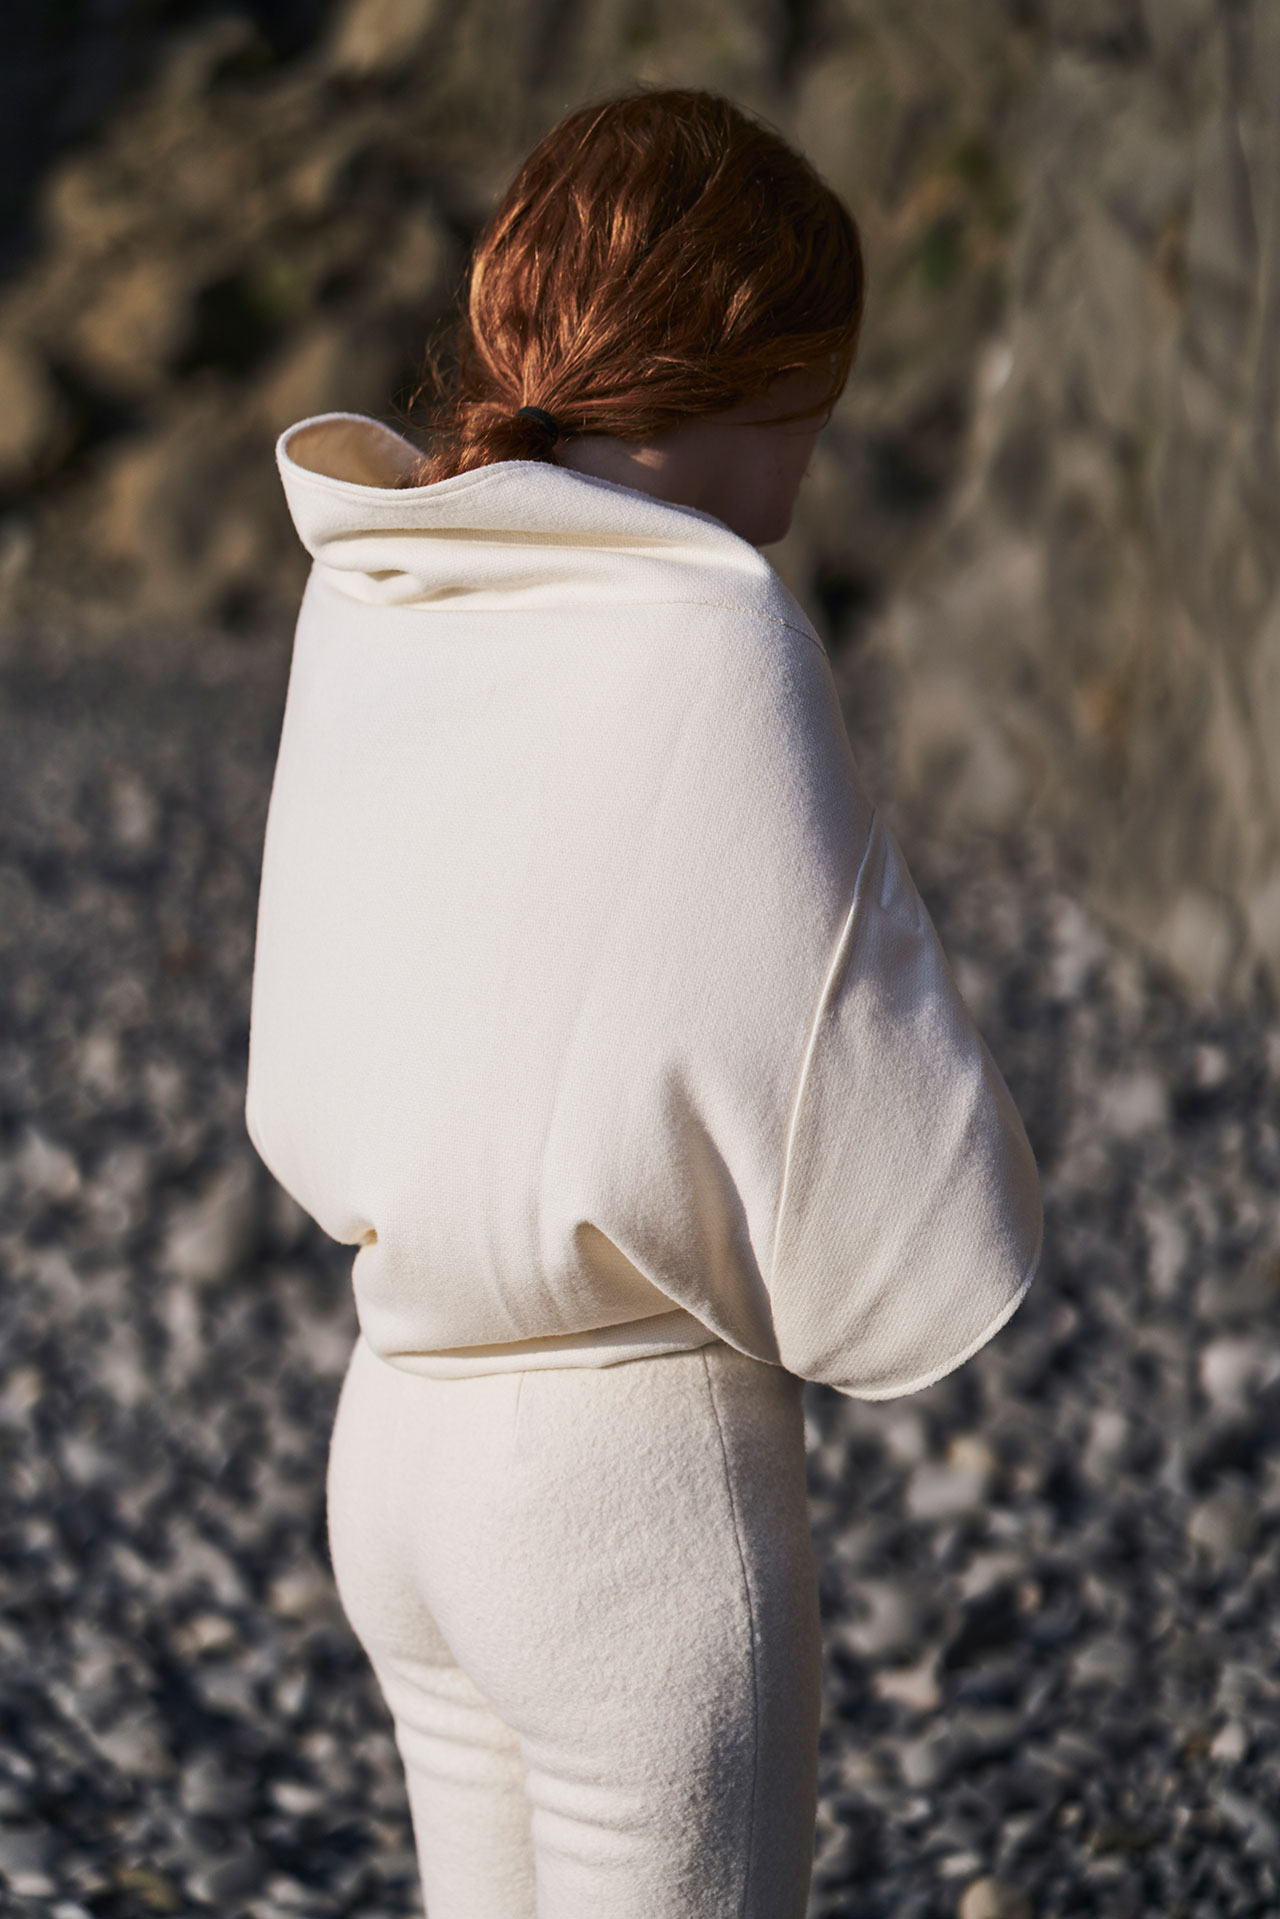 Félicie Eymard,Shawl Outfit, fromMetamorphosisCollection. Photo by Julien Hayard.